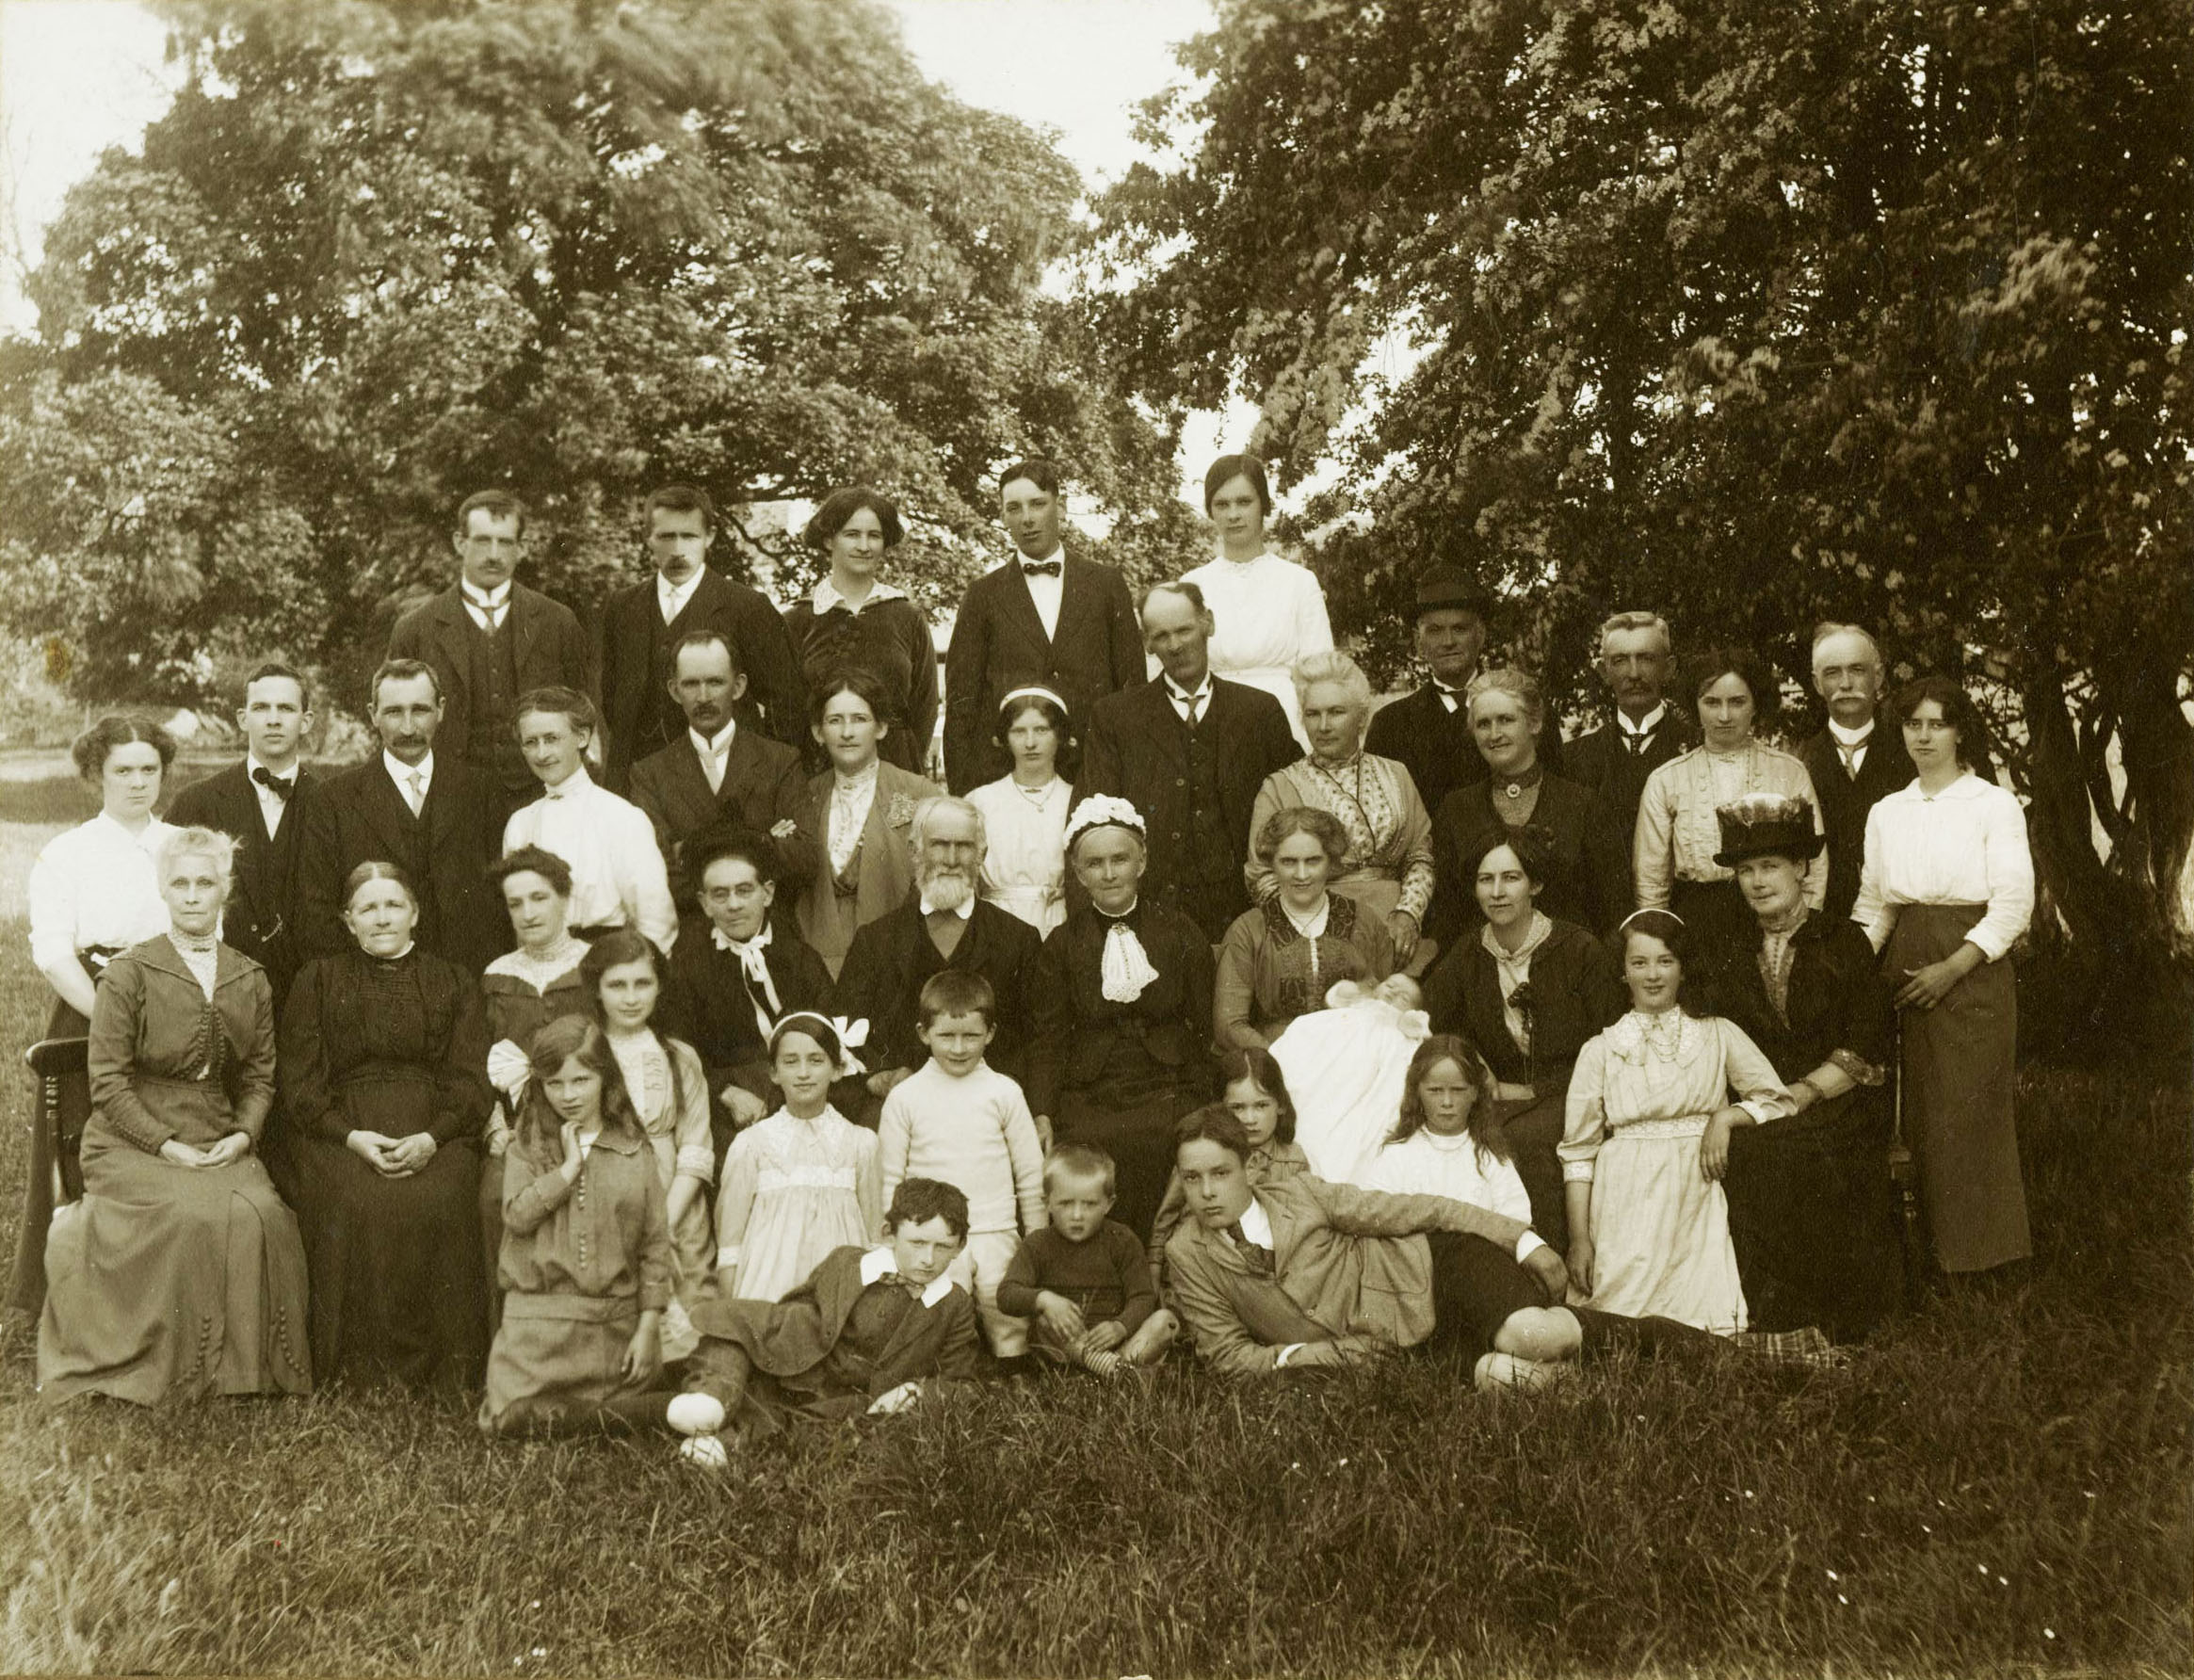 Wannop and Robson Families of Blencow and Johnby ca. 1915